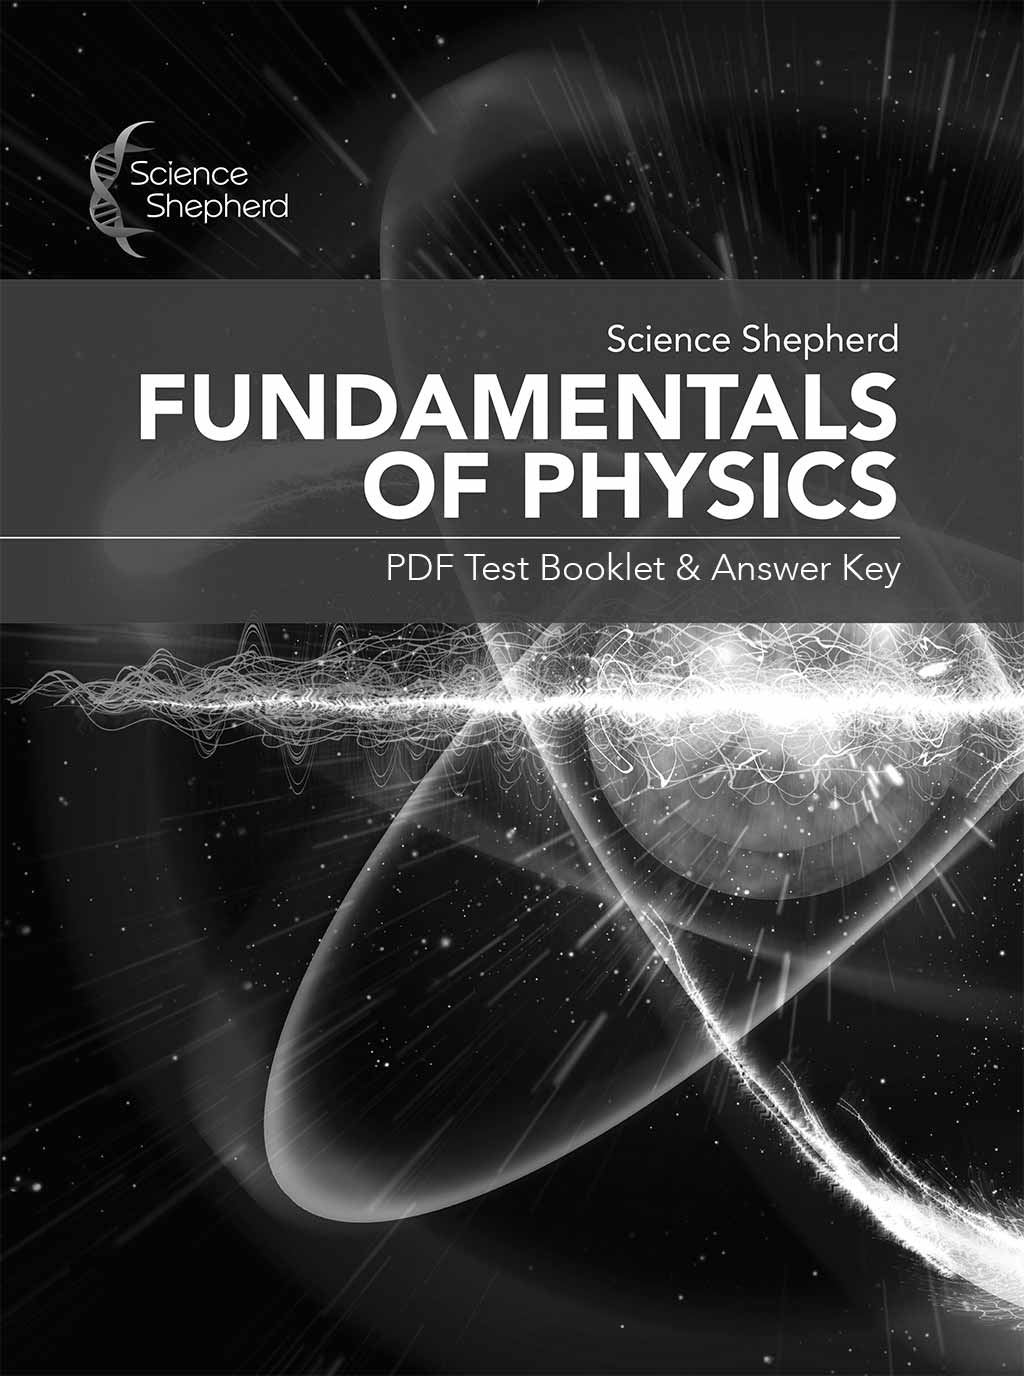 Fundamentals of Physics Test & Answer Key Packet